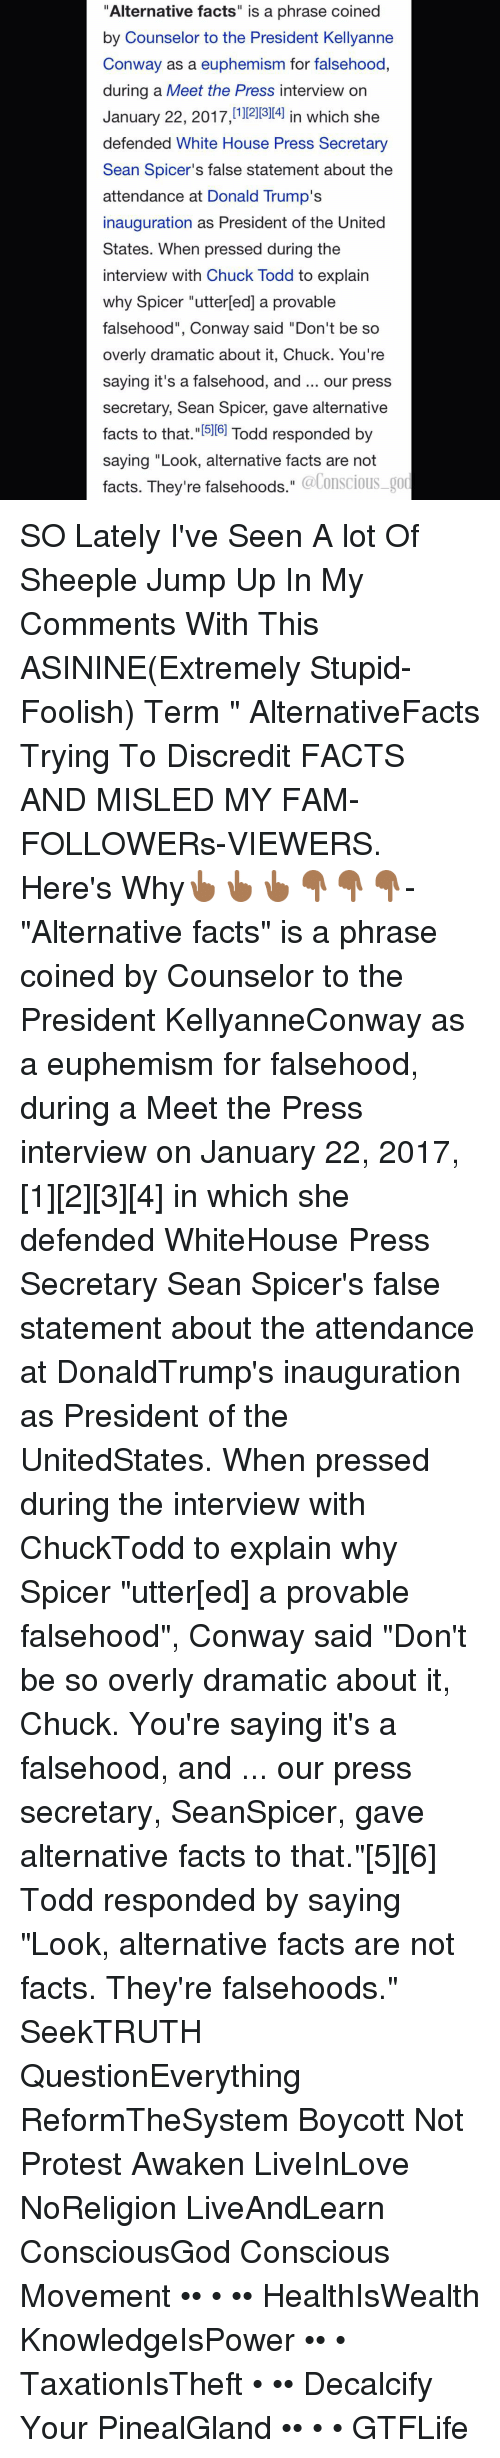 """Conway, Memes, and Euphemism: """"Alternative facts"""" is a phrase coined  by Counselor to the President Kellyanne  Conway as a euphemism for falsehood,  during a Meet the Press interview on  January 22, 2017,11  in which she  defended White House Press Secretary  Sean Spicer's false statement about the  attendance at Donald Trump's  inauguration as President of the United  States. When pressed during the  interview with Chuck Todd to explain  why Spicer """"utterled] a provable  falsehood"""", Conway said """"Don't be so  overly dramatic about it, Chuck. You're  saying it's a falsehood, and our press  secretary, Sean Spicer, gave alternative  facts to that  15llel Todd responded by  saying """"Look, alternative facts are not  facts. They're falsehoods  @Conscious god SO Lately I've Seen A lot Of Sheeple Jump Up In My Comments With This ASININE(Extremely Stupid-Foolish) Term """" AlternativeFacts Trying To Discredit FACTS AND MISLED MY FAM-FOLLOWERs-VIEWERS. Here's Why👆🏾👆🏾👆🏾👇🏾👇🏾👇🏾- """"Alternative facts"""" is a phrase coined by Counselor to the President KellyanneConway as a euphemism for falsehood, during a Meet the Press interview on January 22, 2017,[1][2][3][4] in which she defended WhiteHouse Press Secretary Sean Spicer's false statement about the attendance at DonaldTrump's inauguration as President of the UnitedStates. When pressed during the interview with ChuckTodd to explain why Spicer """"utter[ed] a provable falsehood"""", Conway said """"Don't be so overly dramatic about it, Chuck. You're saying it's a falsehood, and ... our press secretary, SeanSpicer, gave alternative facts to that.""""[5][6] Todd responded by saying """"Look, alternative facts are not facts. They're falsehoods."""" SeekTRUTH QuestionEverything ReformTheSystem Boycott Not Protest Awaken LiveInLove NoReligion LiveAndLearn ConsciousGod Conscious Movement •• • •• HealthIsWealth KnowledgeIsPower •• • TaxationIsTheft • •• Decalcify Your PinealGland •• • • GTFLife"""